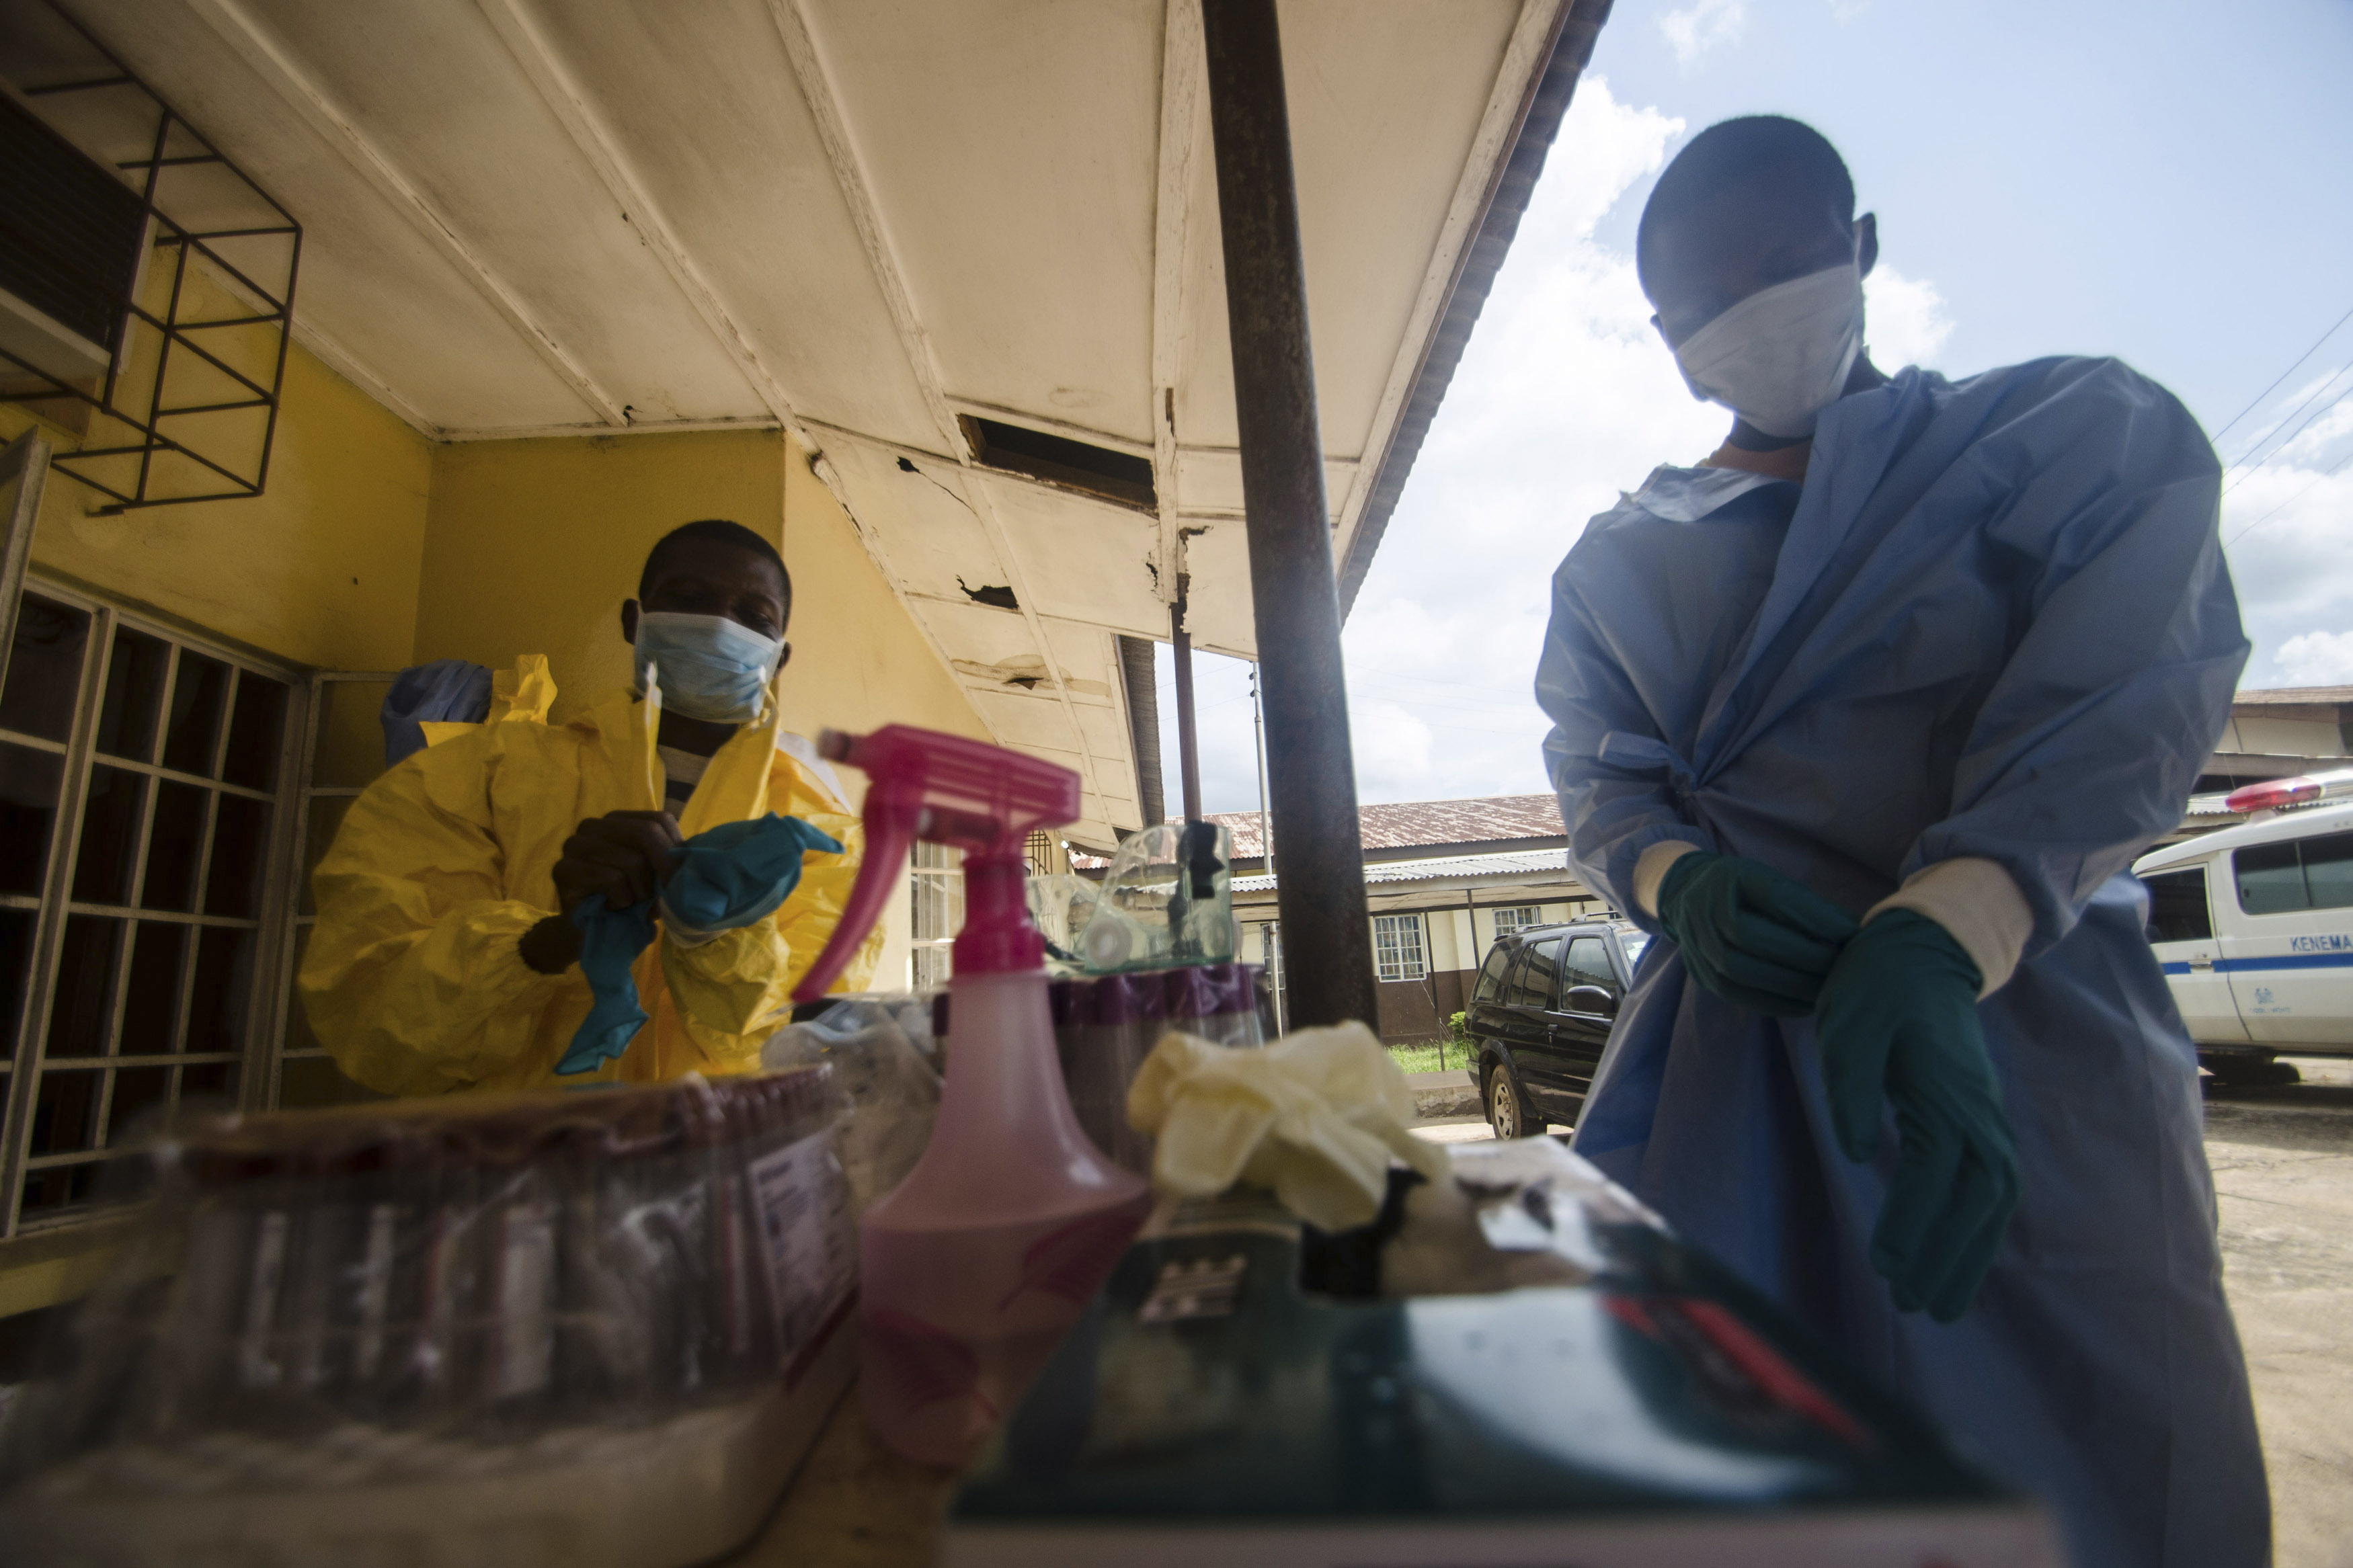 Medical staff put on protective gear in Kenema government hospital before taking a sample from a suspected Ebola patient in Kenema